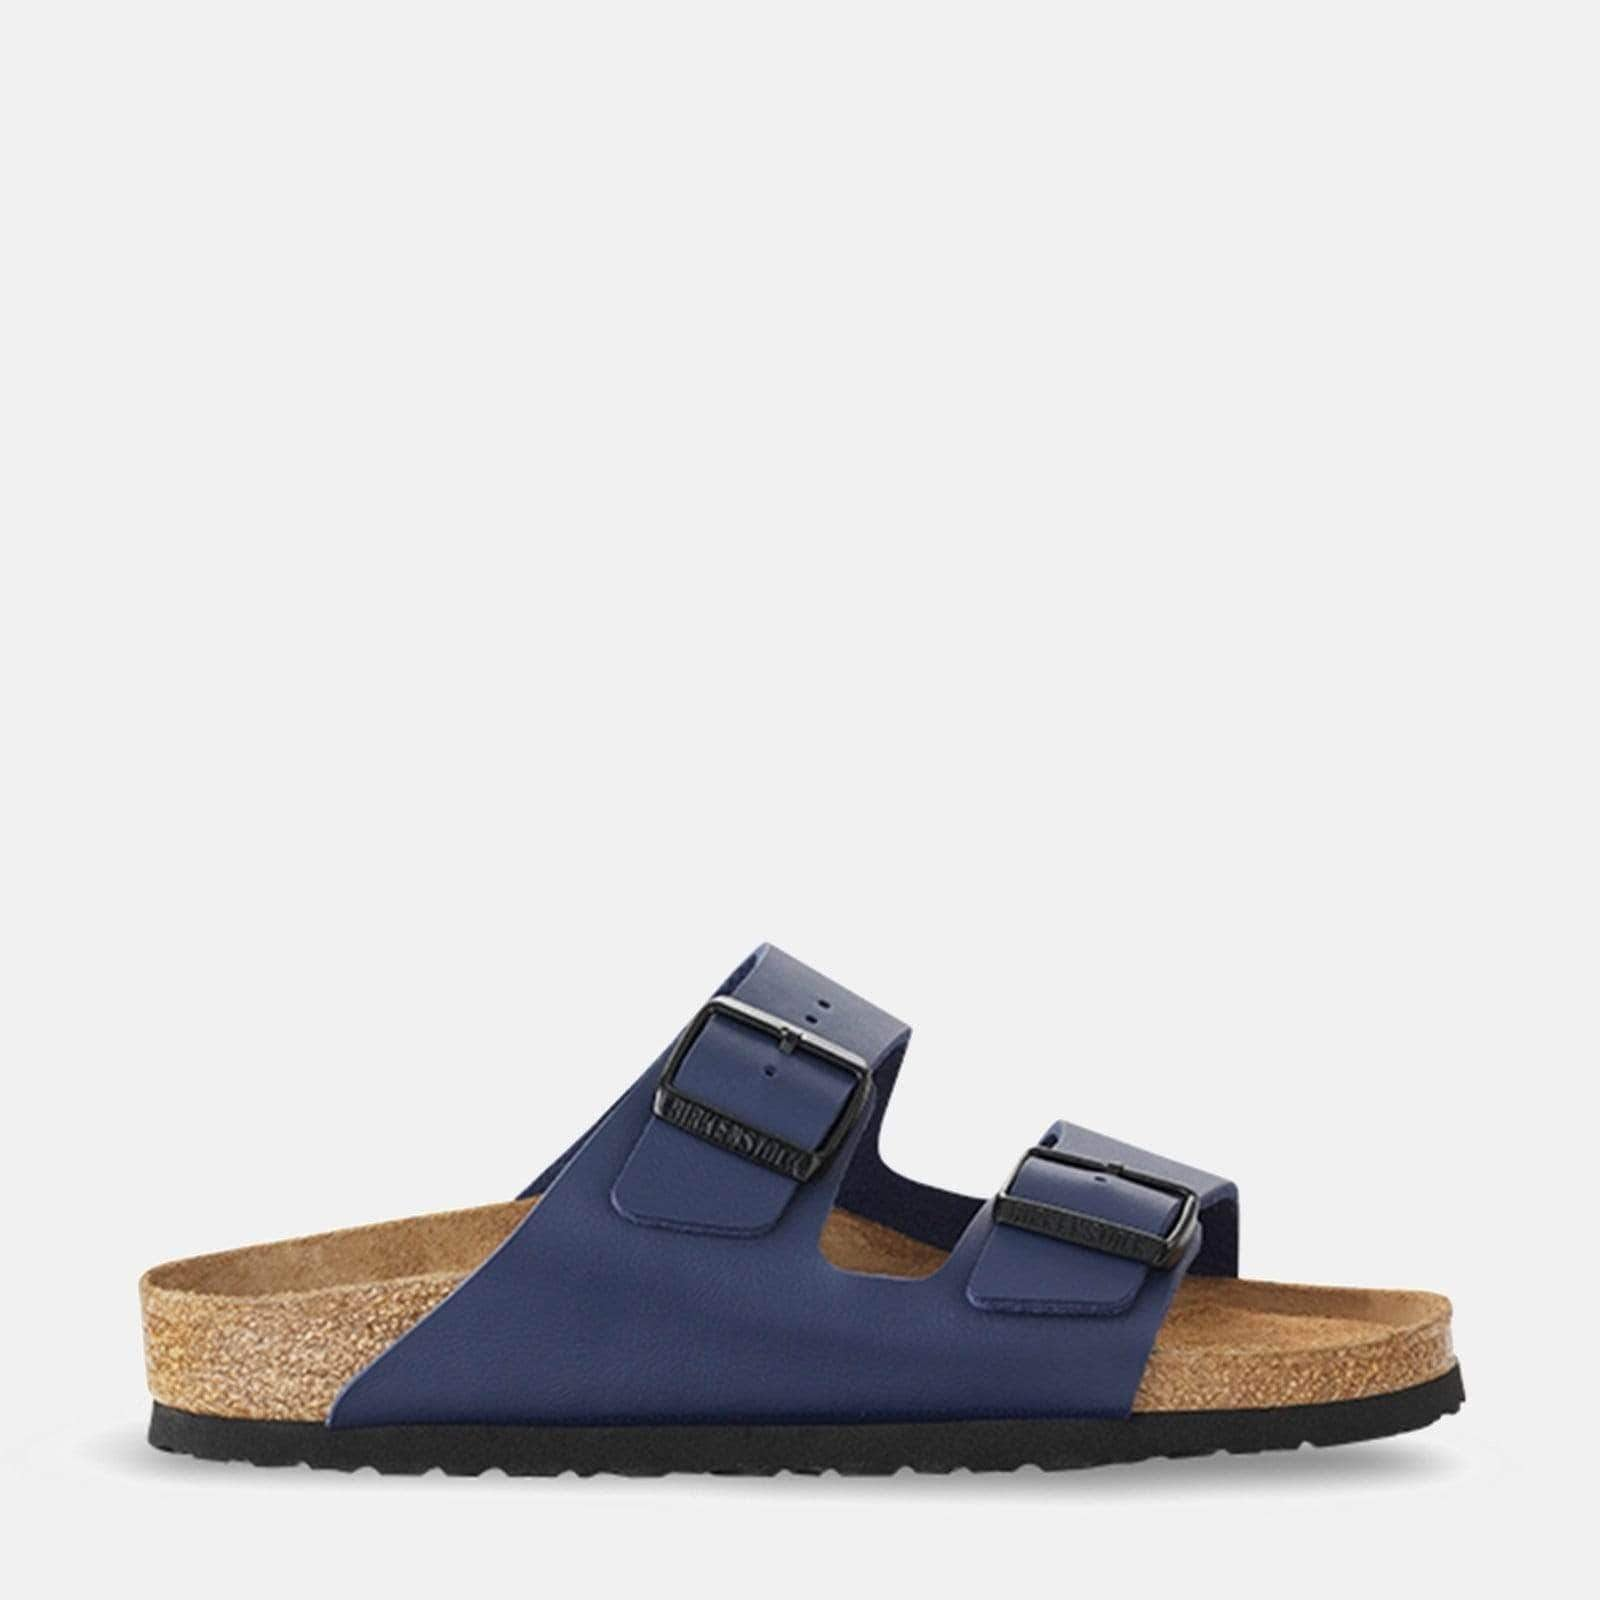 Birkenstock Footwear Arizona Soft Footbed Narrow Fit Blue 51063